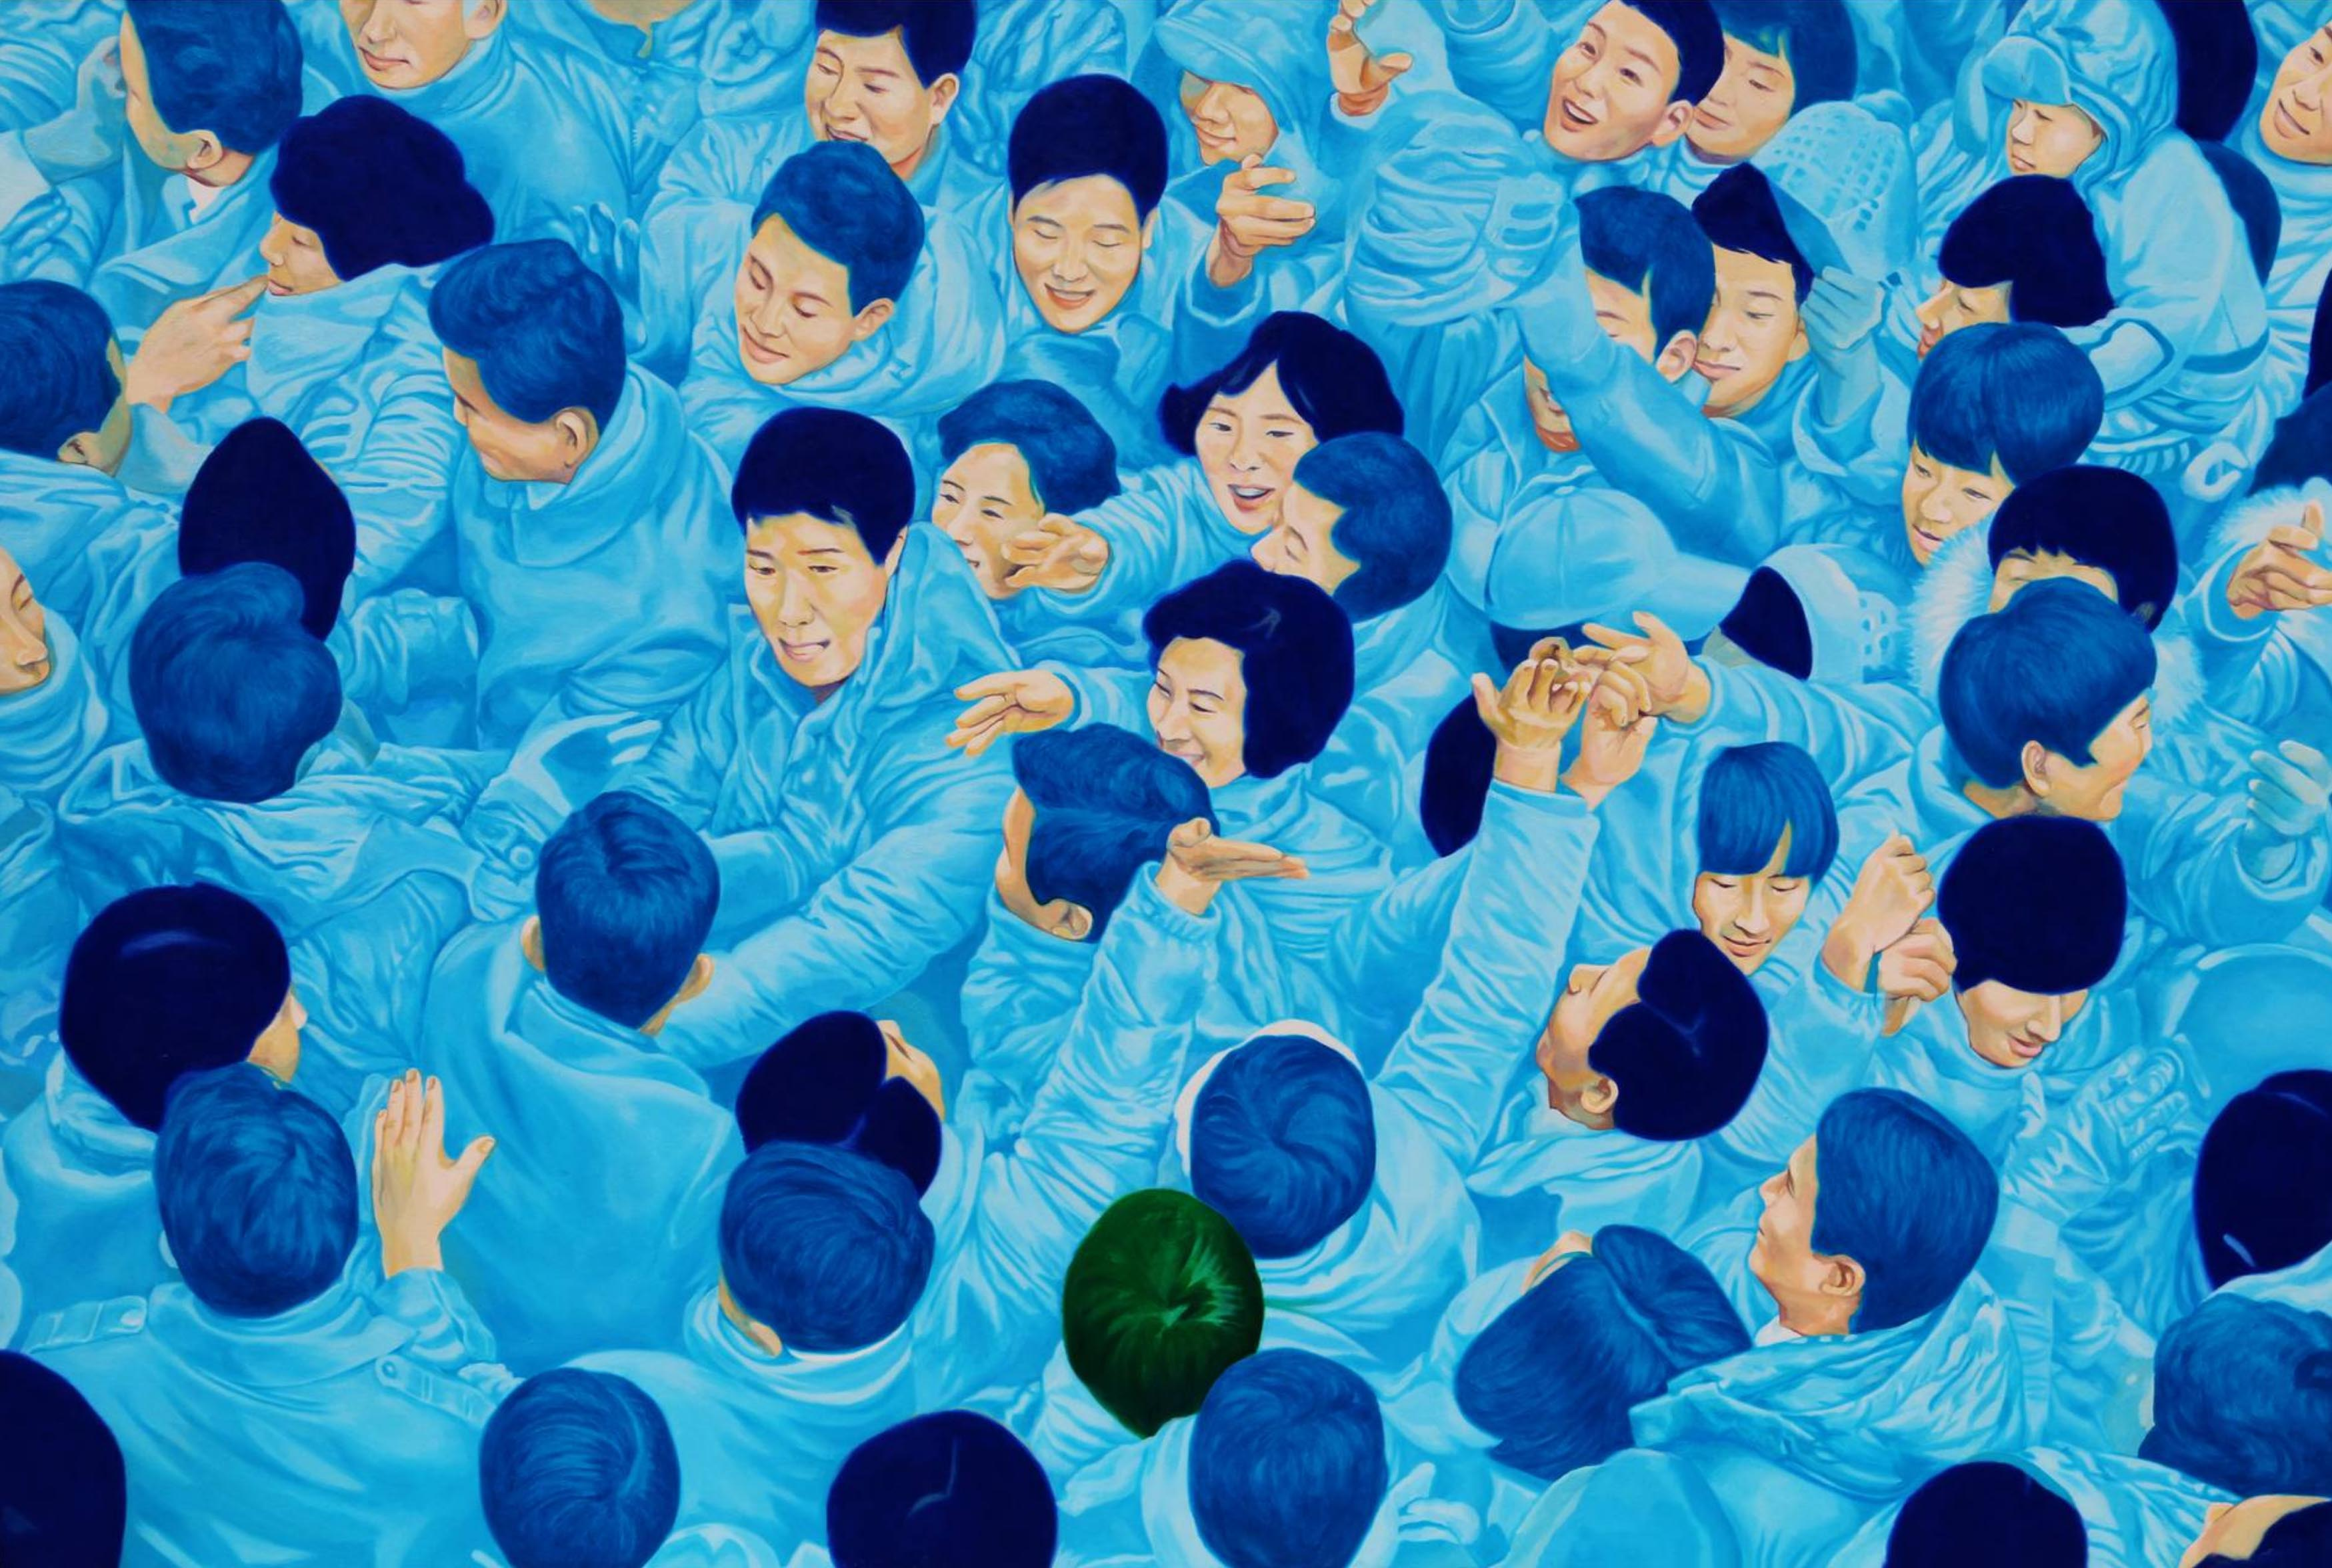 Su hyun Kim, Blue Tide, 2017, oil on canvas, 112 x 145 cm